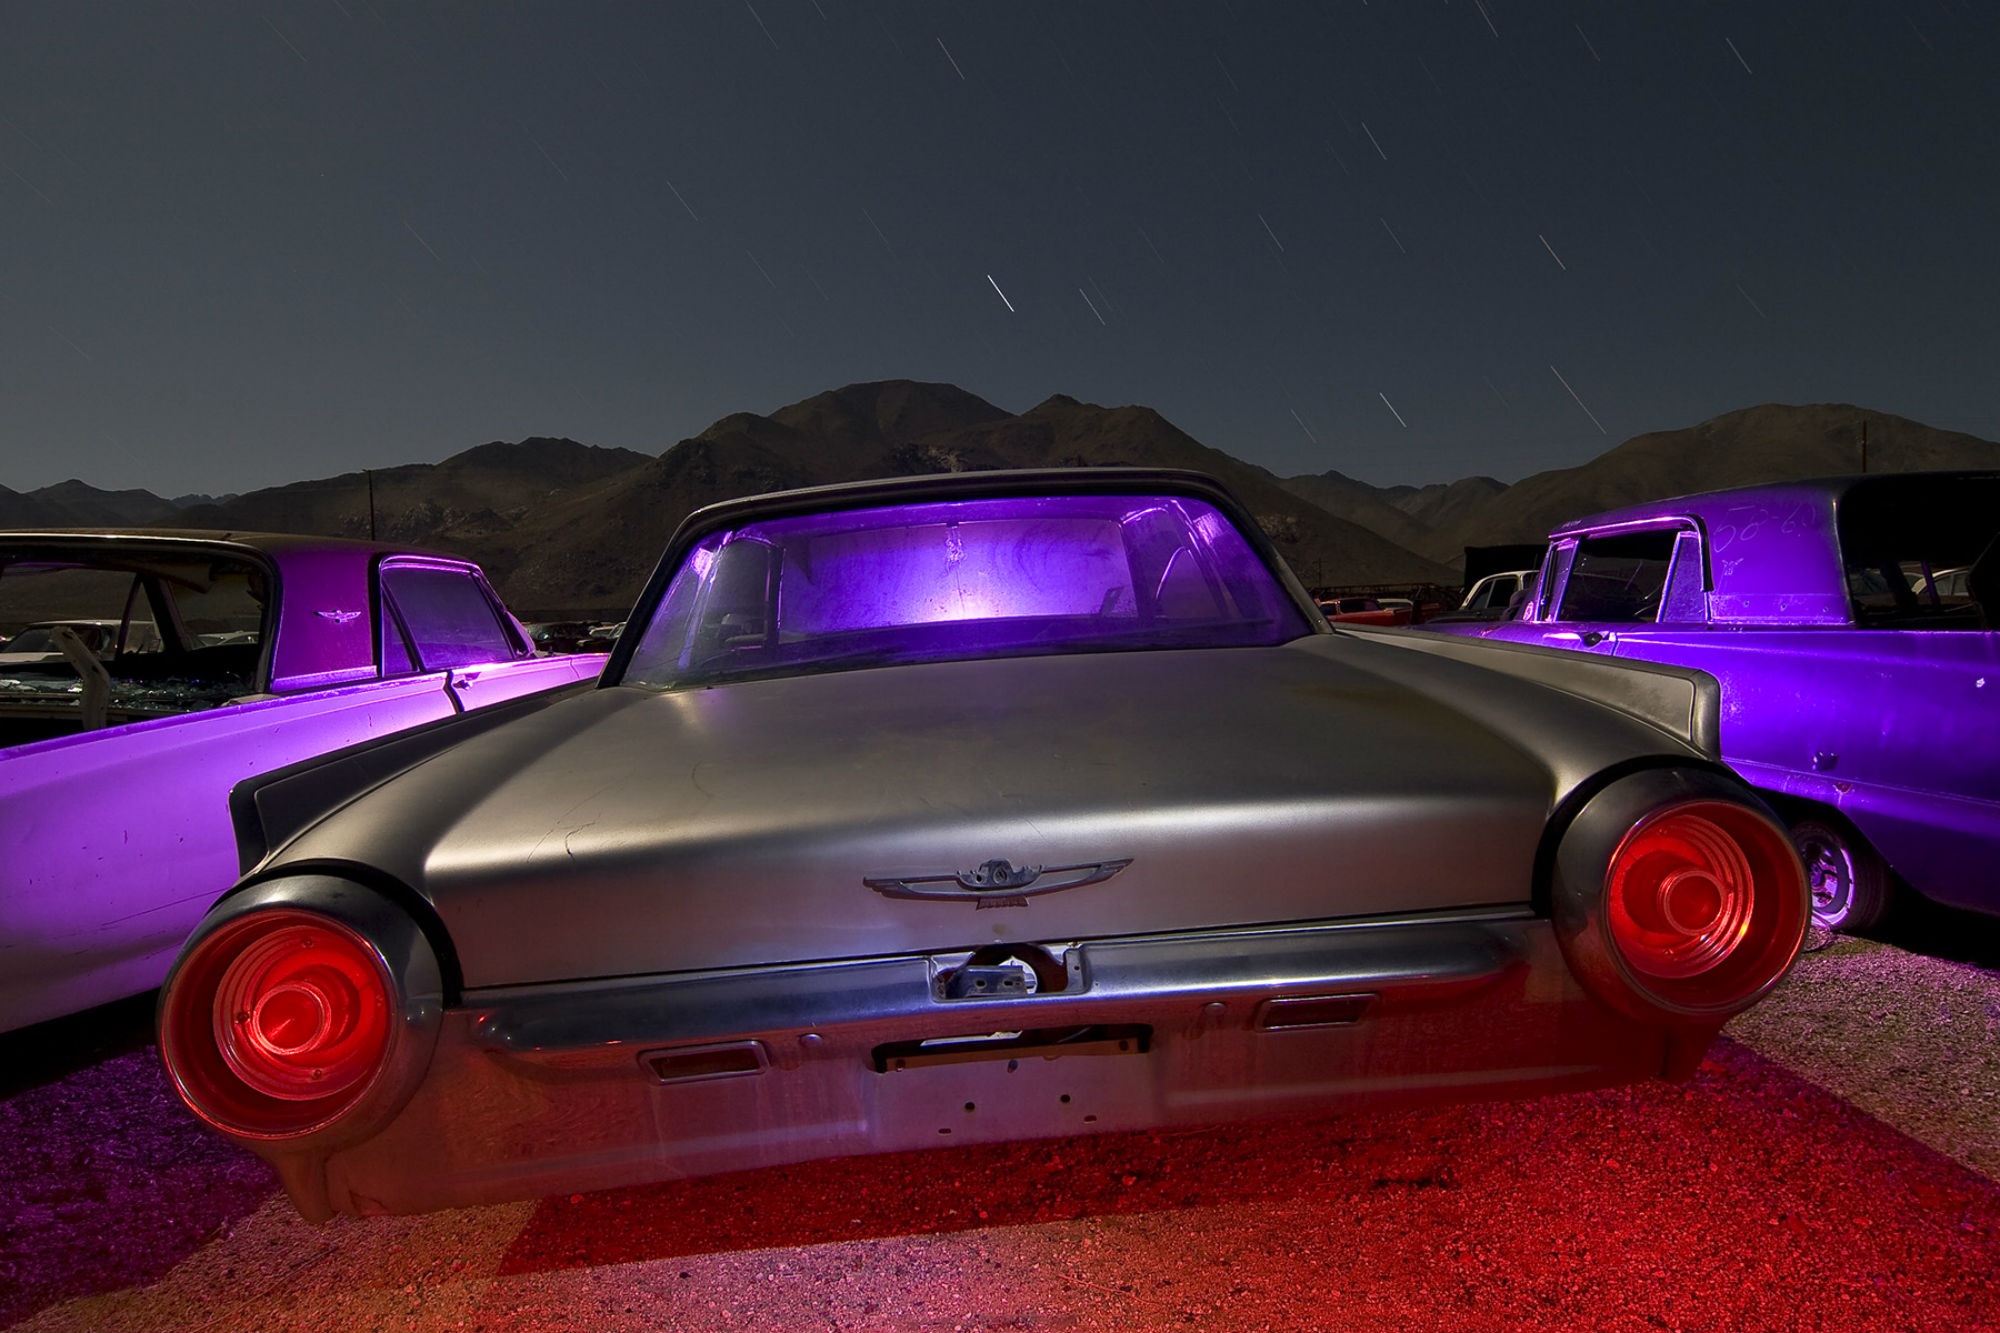 troy paiva night photography car